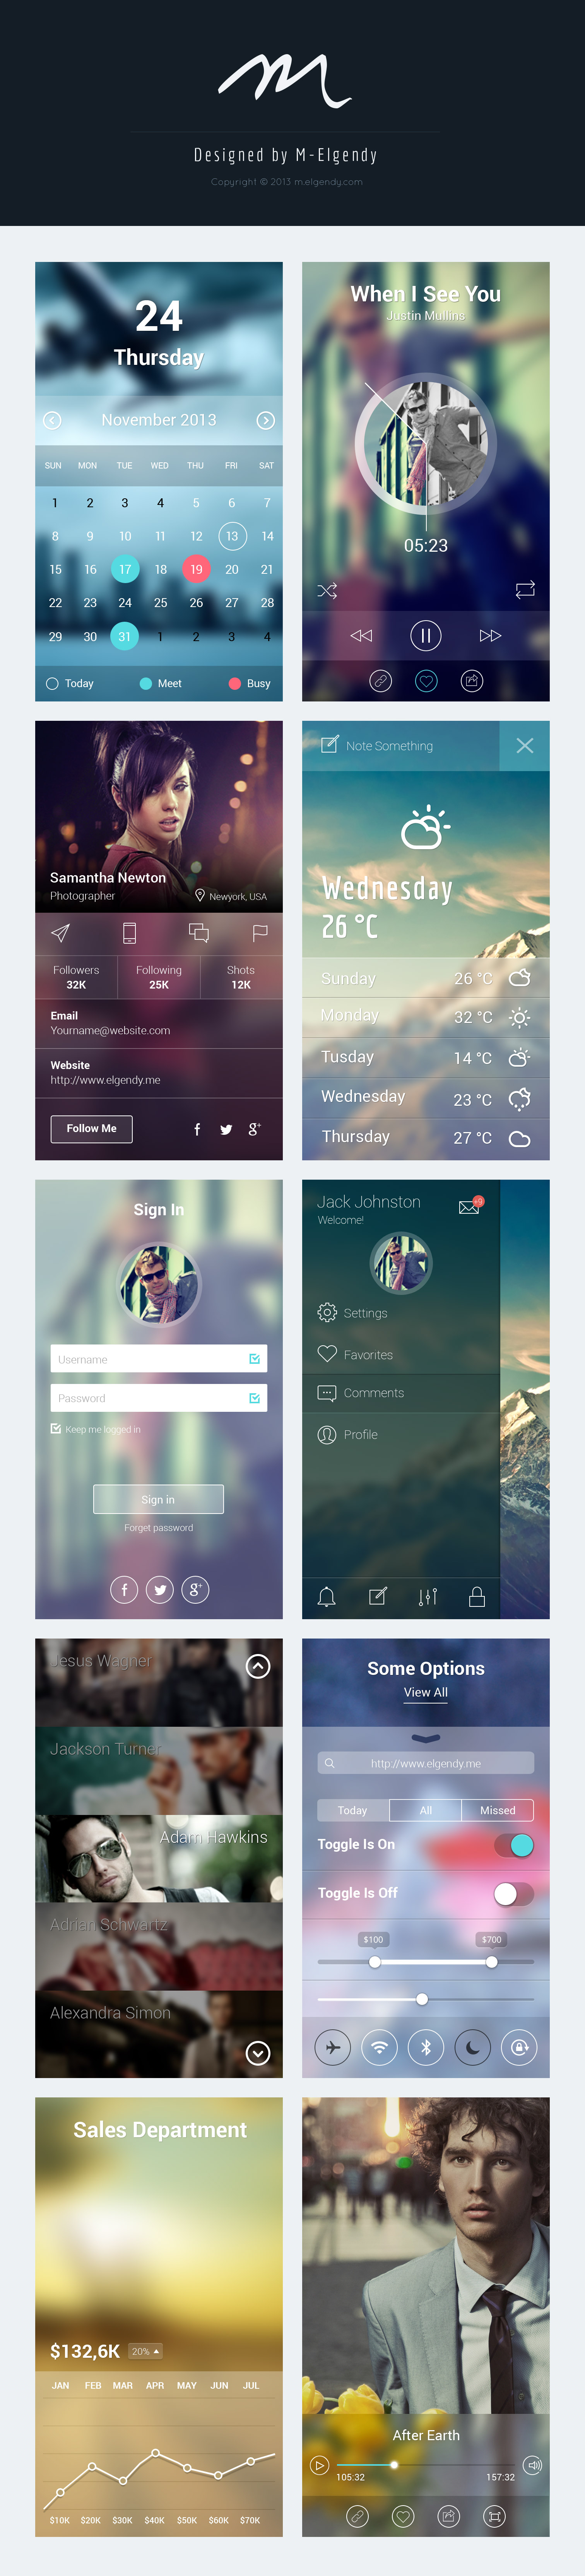 ios splash screen template psd - gorgeous ios 7 app screens psd free download free joomla